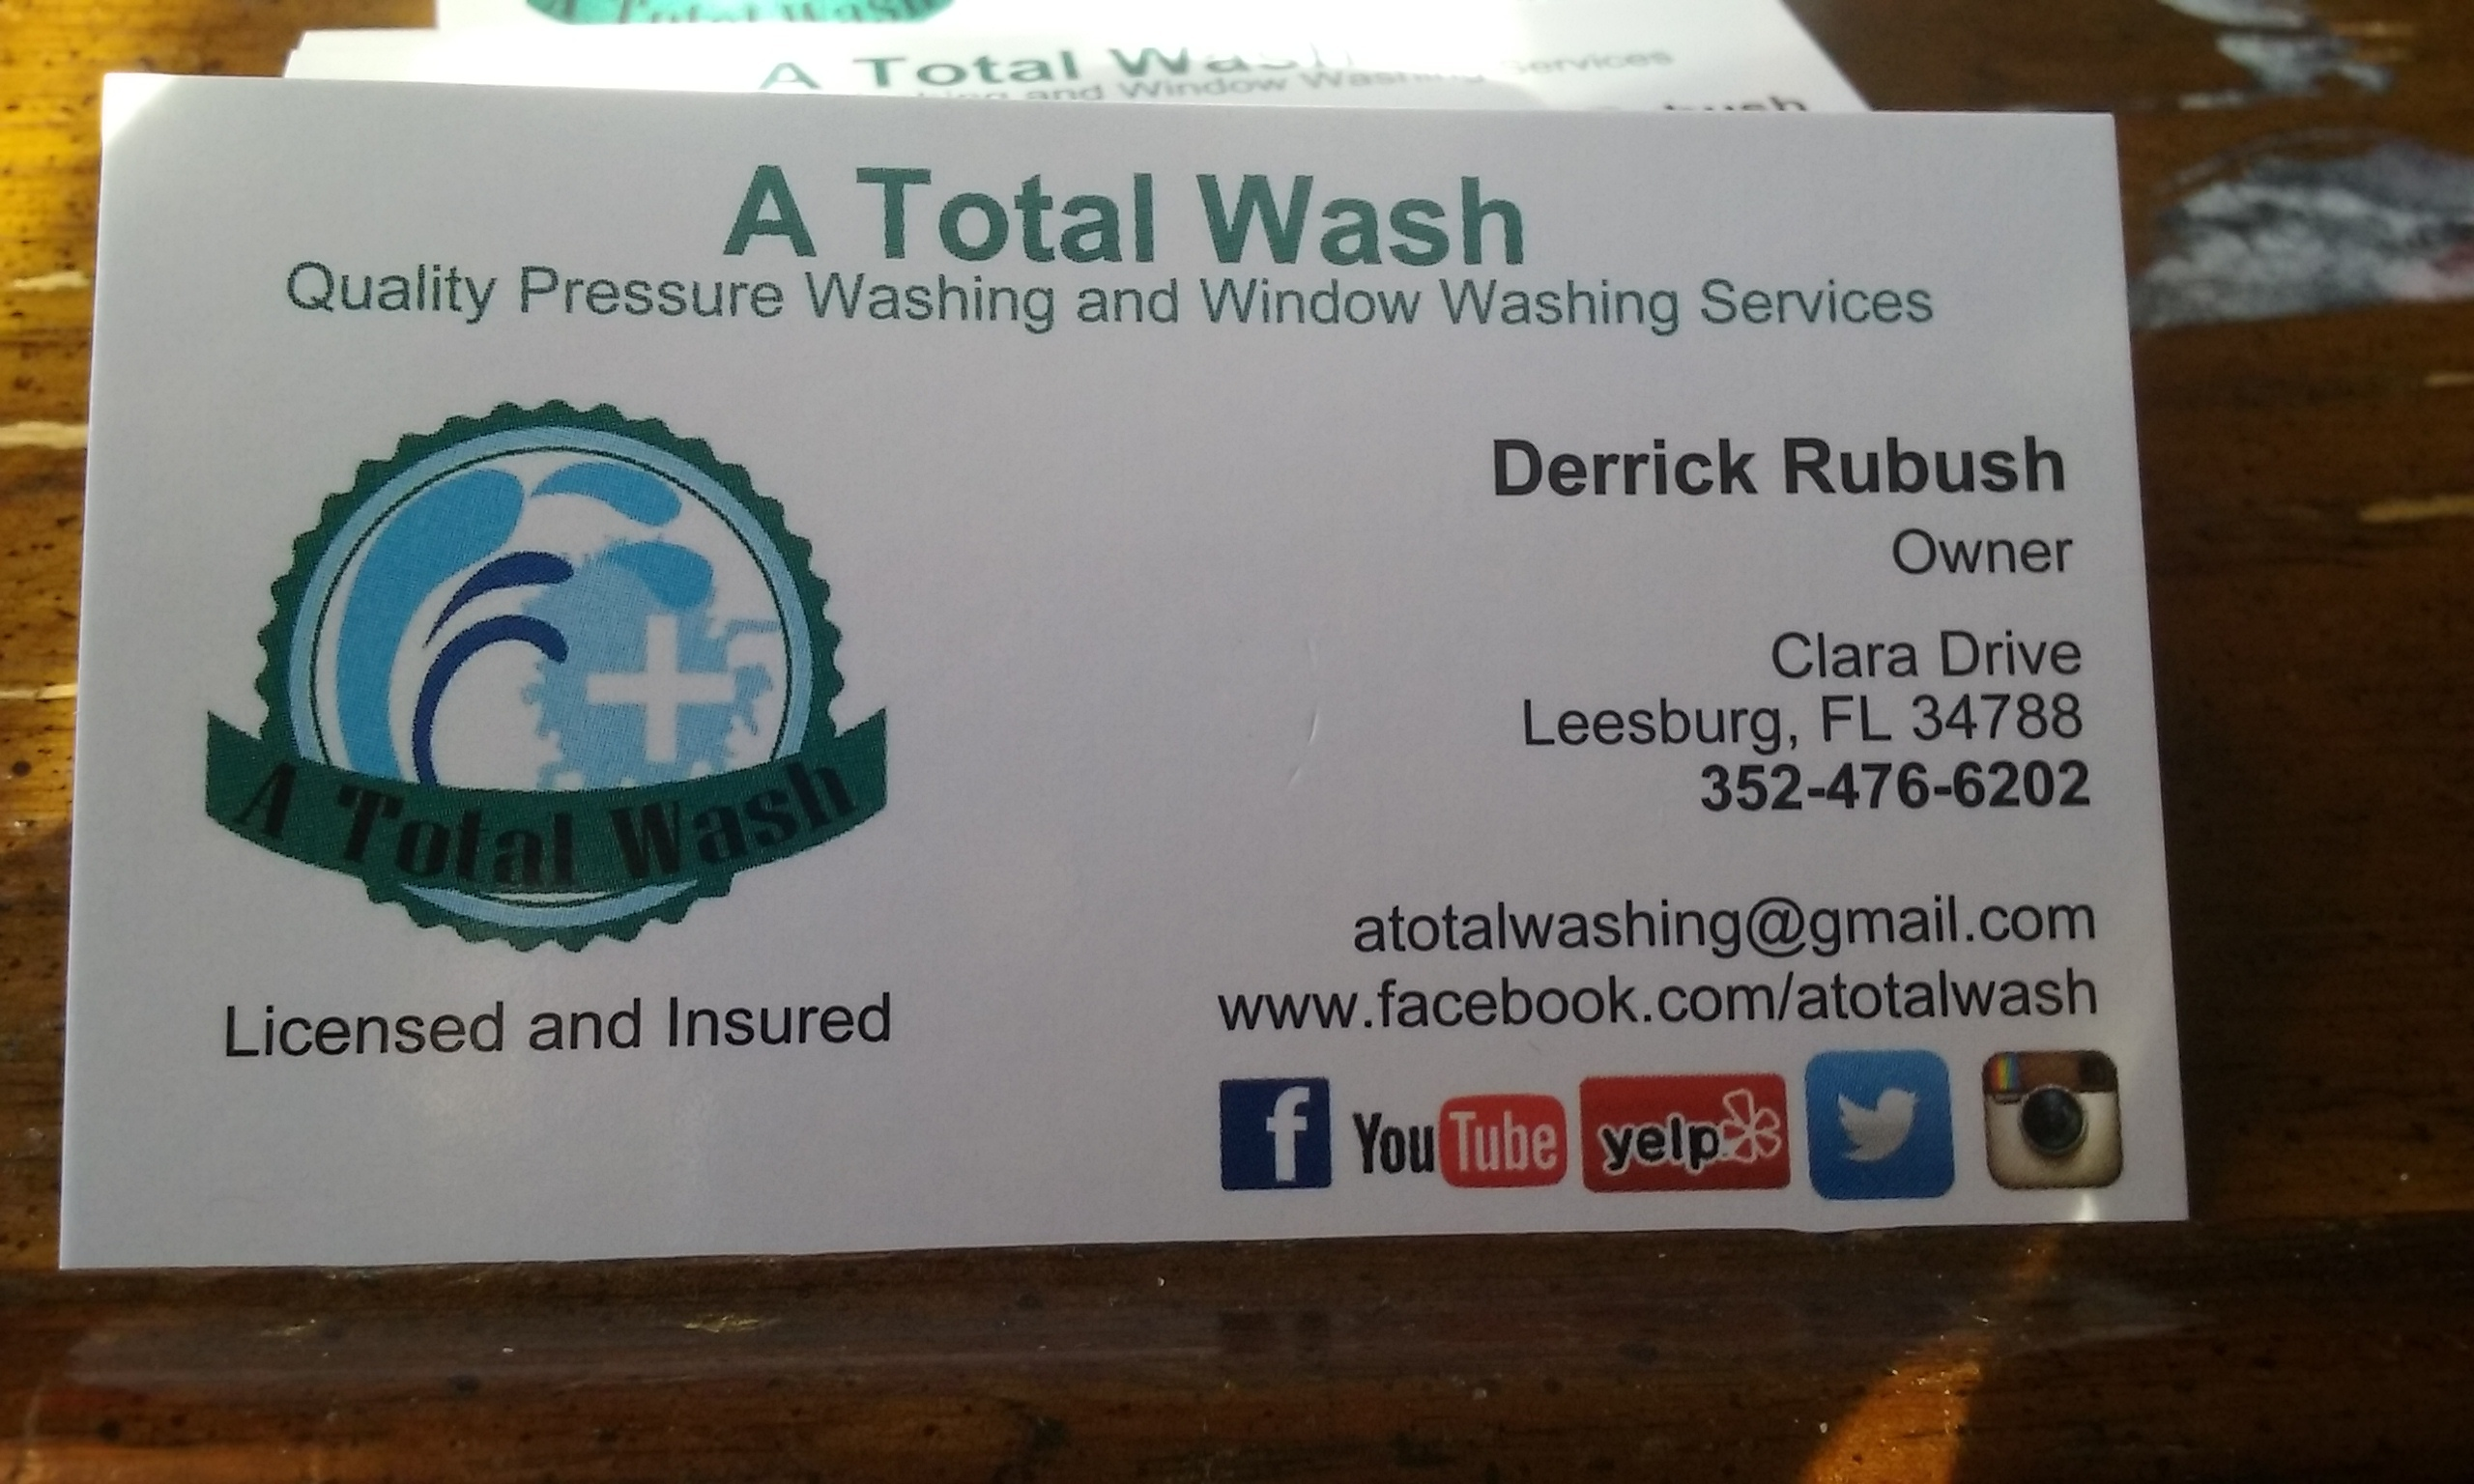 What does your business card look like POST THEM UP Marketing